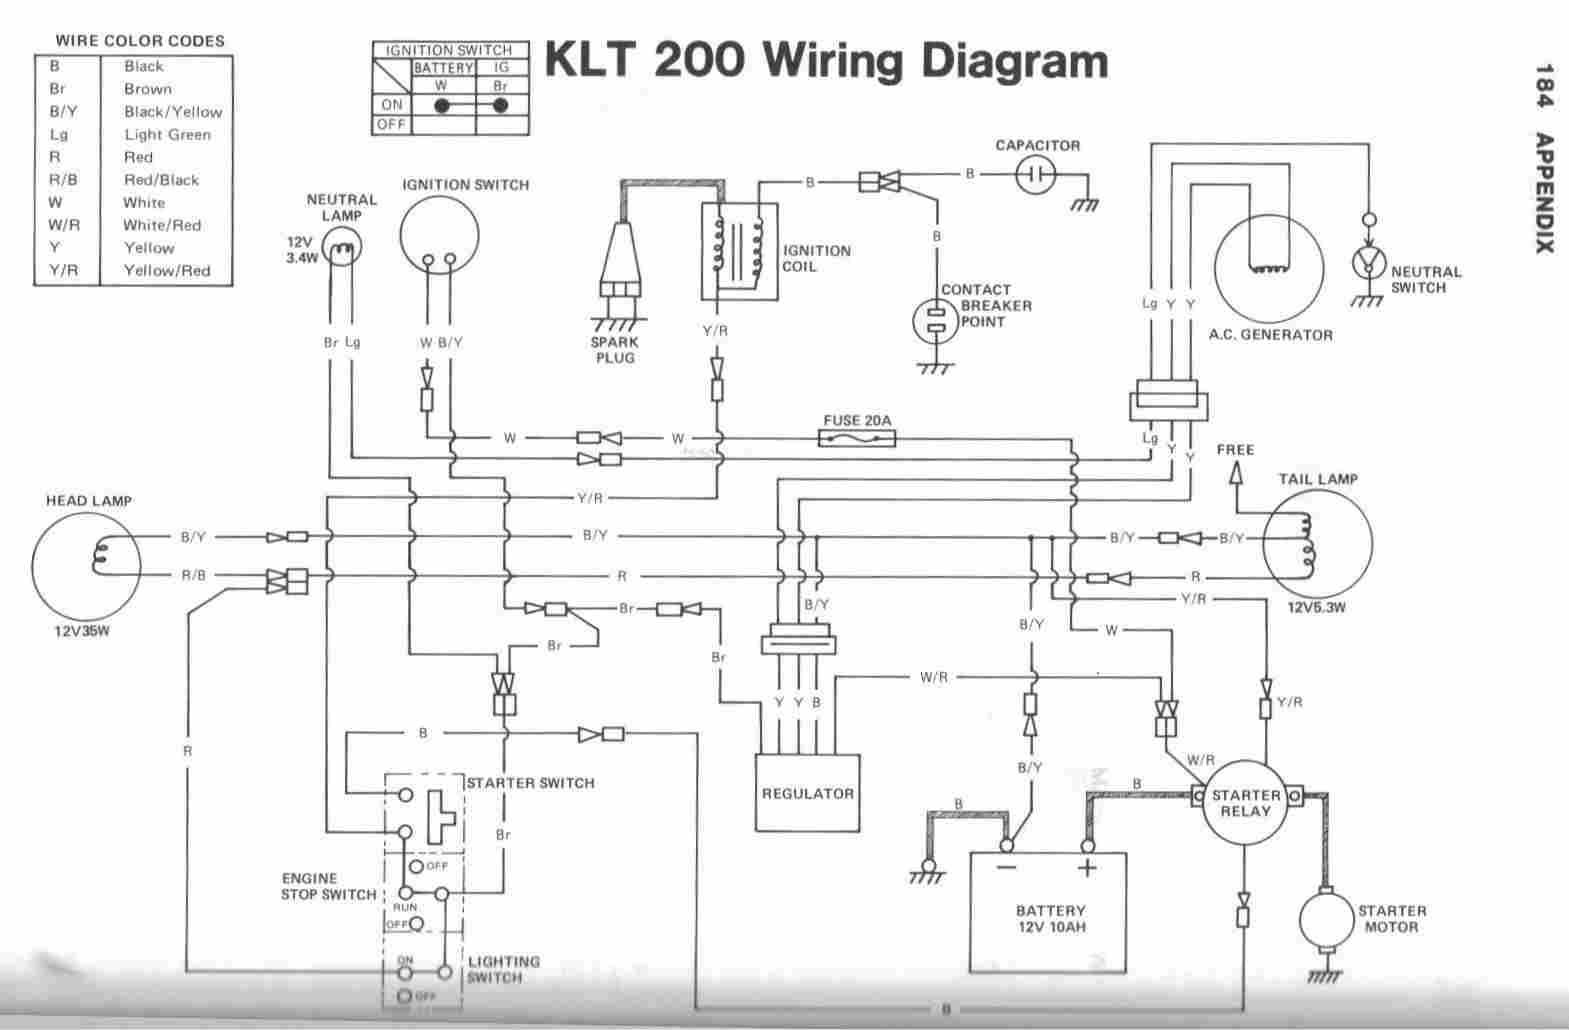 house wiring design pdf residential electrical wiring diagrams pdf easy routing ... house wiring diagrams pdf